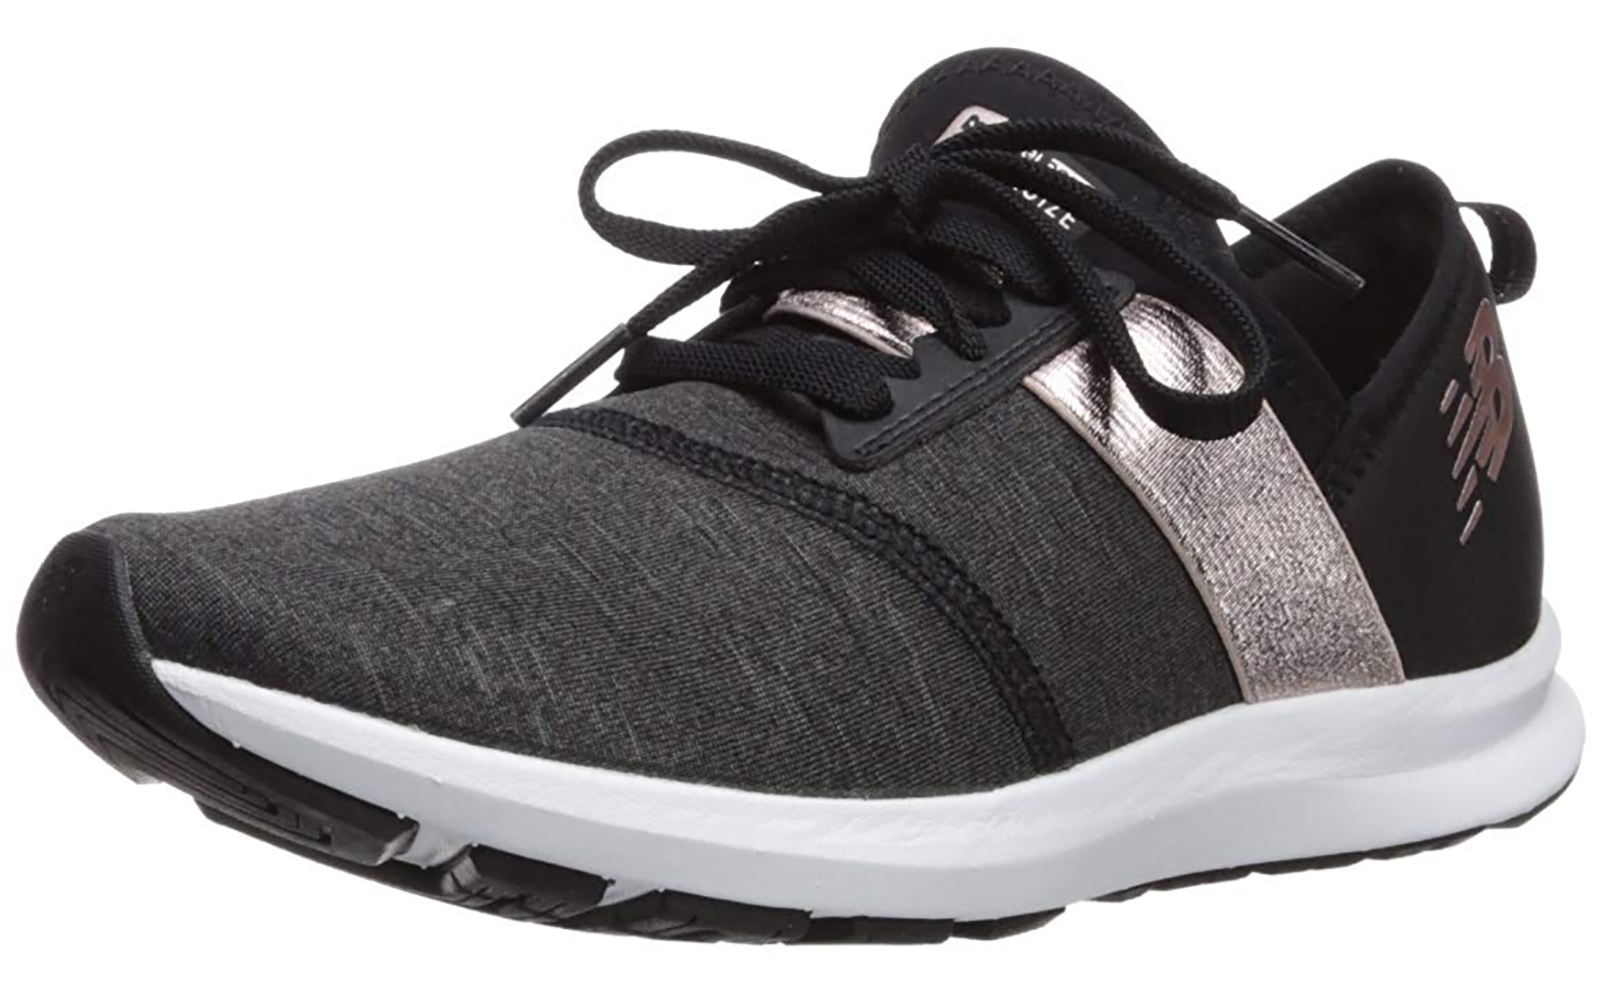 New Balance Women's FuelCore Nergize Cross Trainers